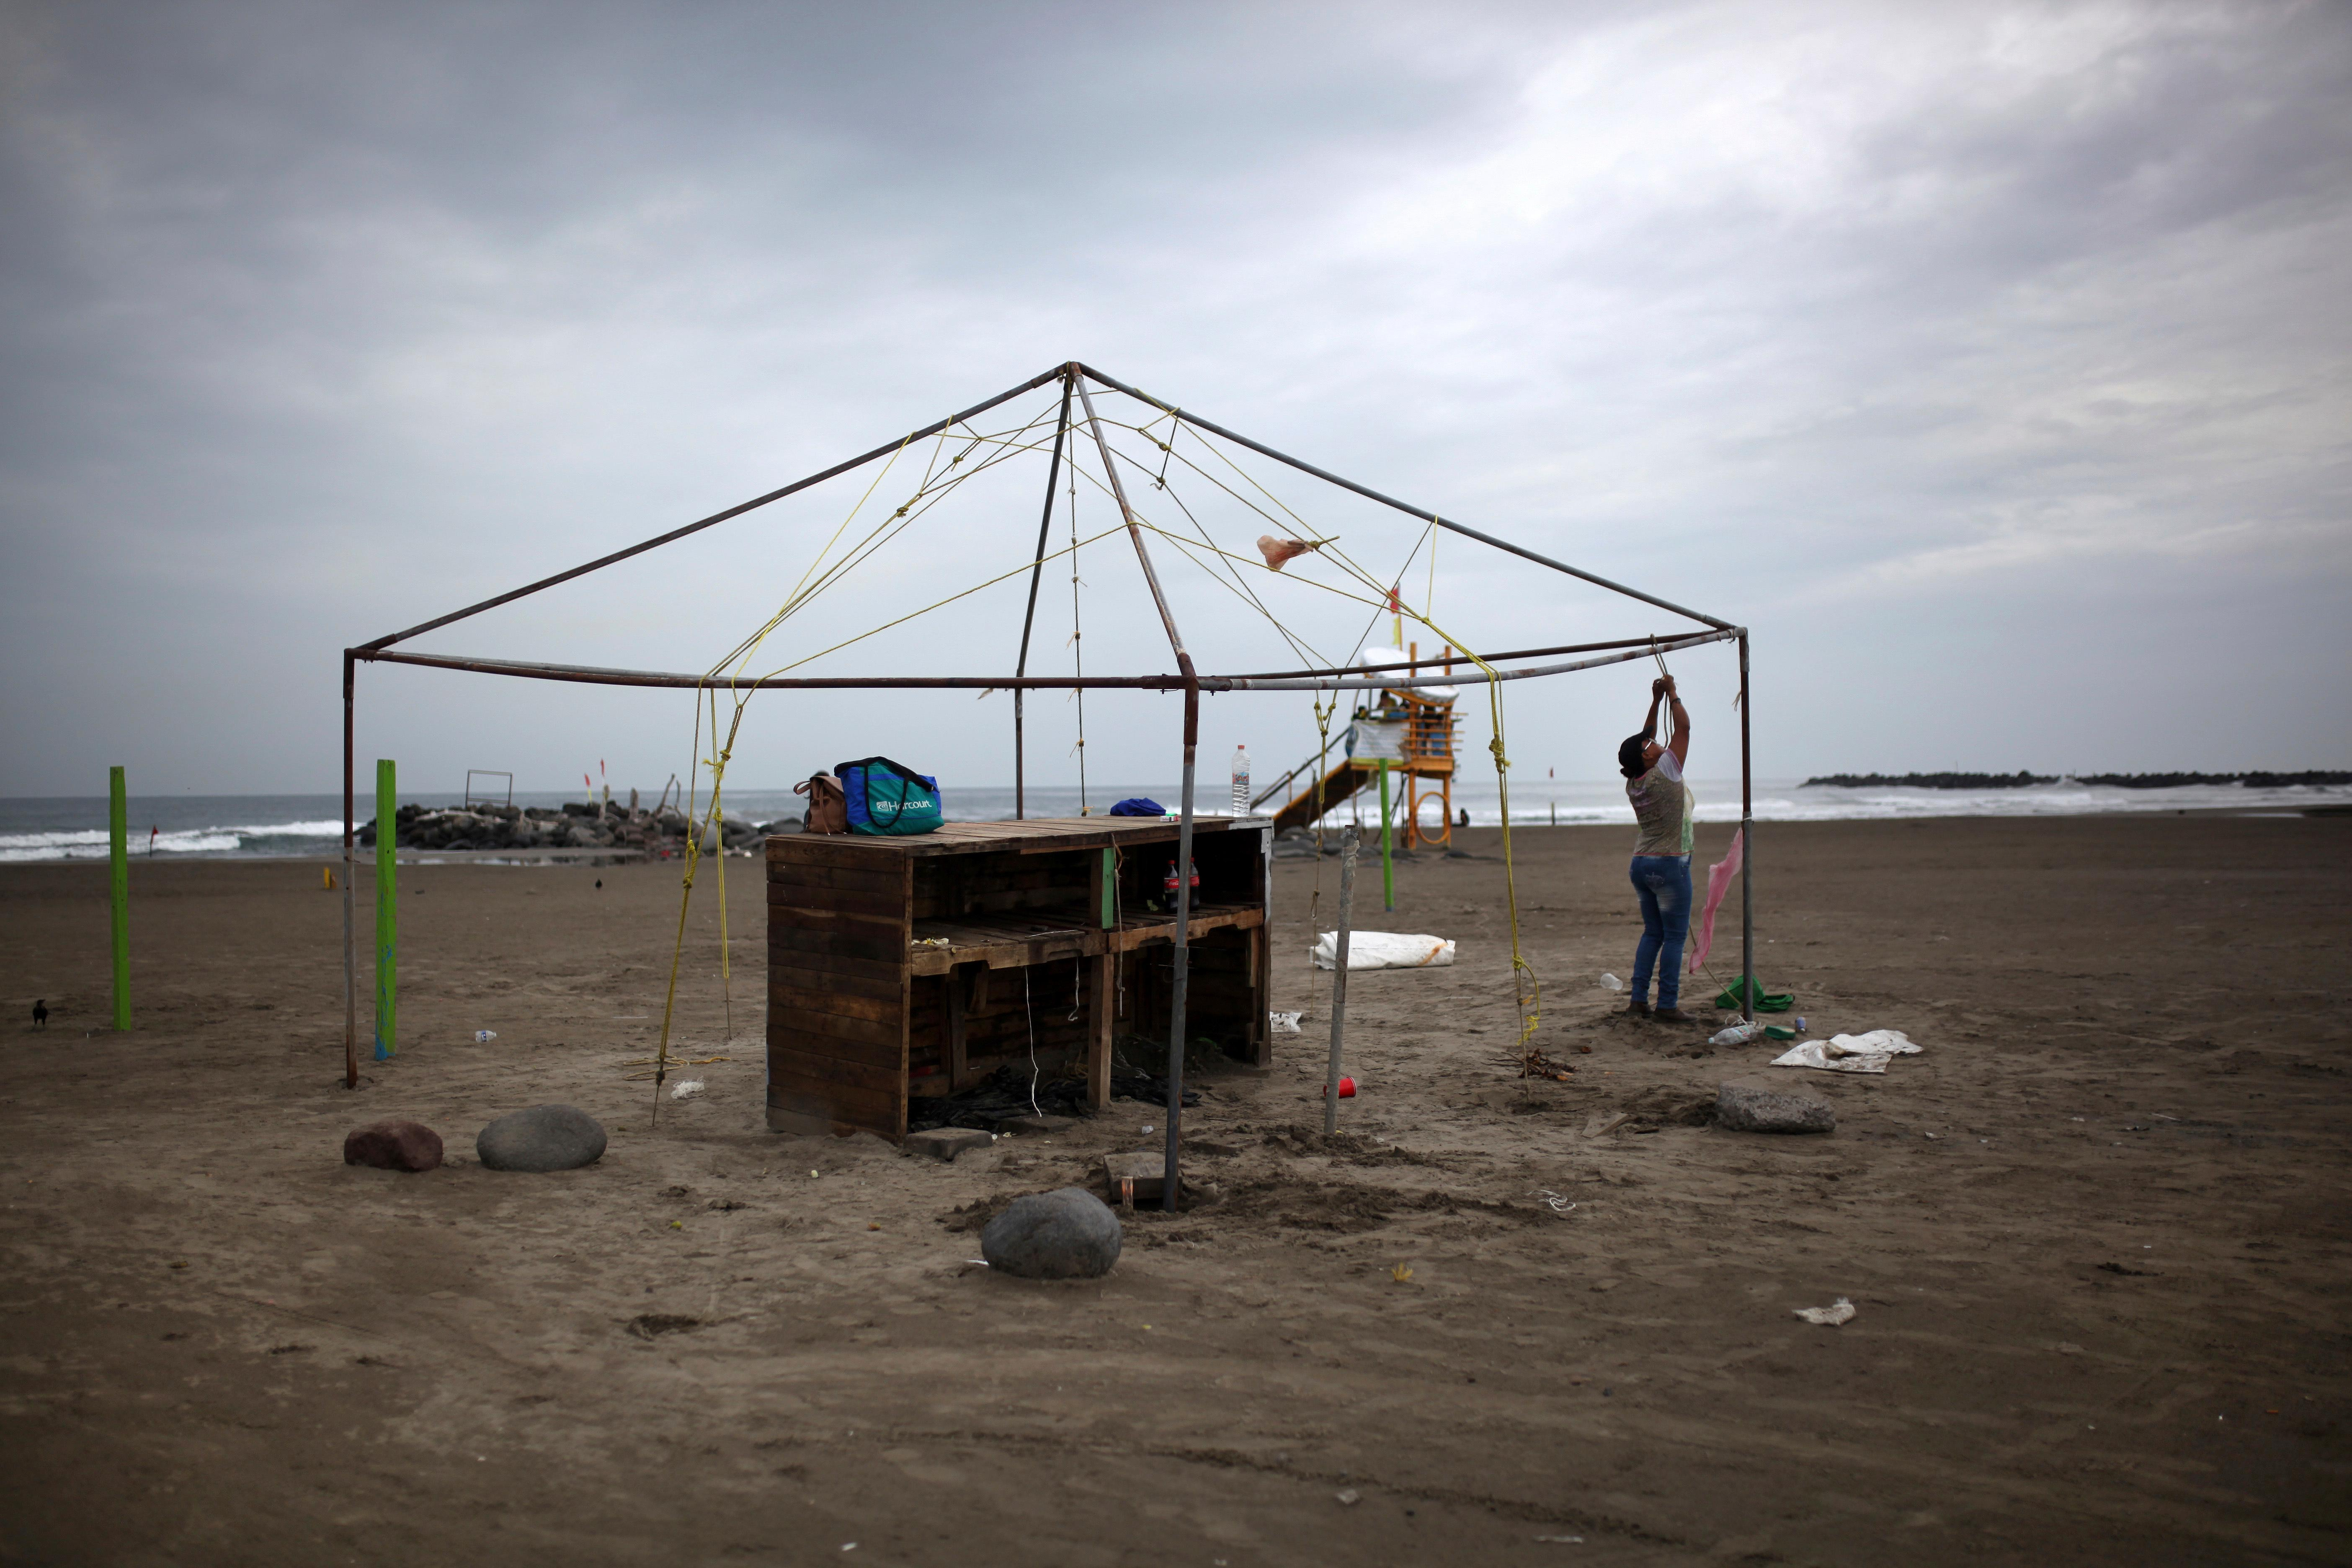 A woman ties down the frame of a beachfront business as she prepares for the arrival of Tropical Storm Franklin, in the port city of Veracruz, Mexico, Wednesday, Aug. 9, 2017. A strengthening Tropical Storm Franklin took aim at Mexico's central Gulf coast after a relatively mild run across the Yucatan Peninsula, with forecasts saying it would grow into a hurricane before making its second landfall late Wednesday or early Thursday. (AP Photo/Felix Marquez)